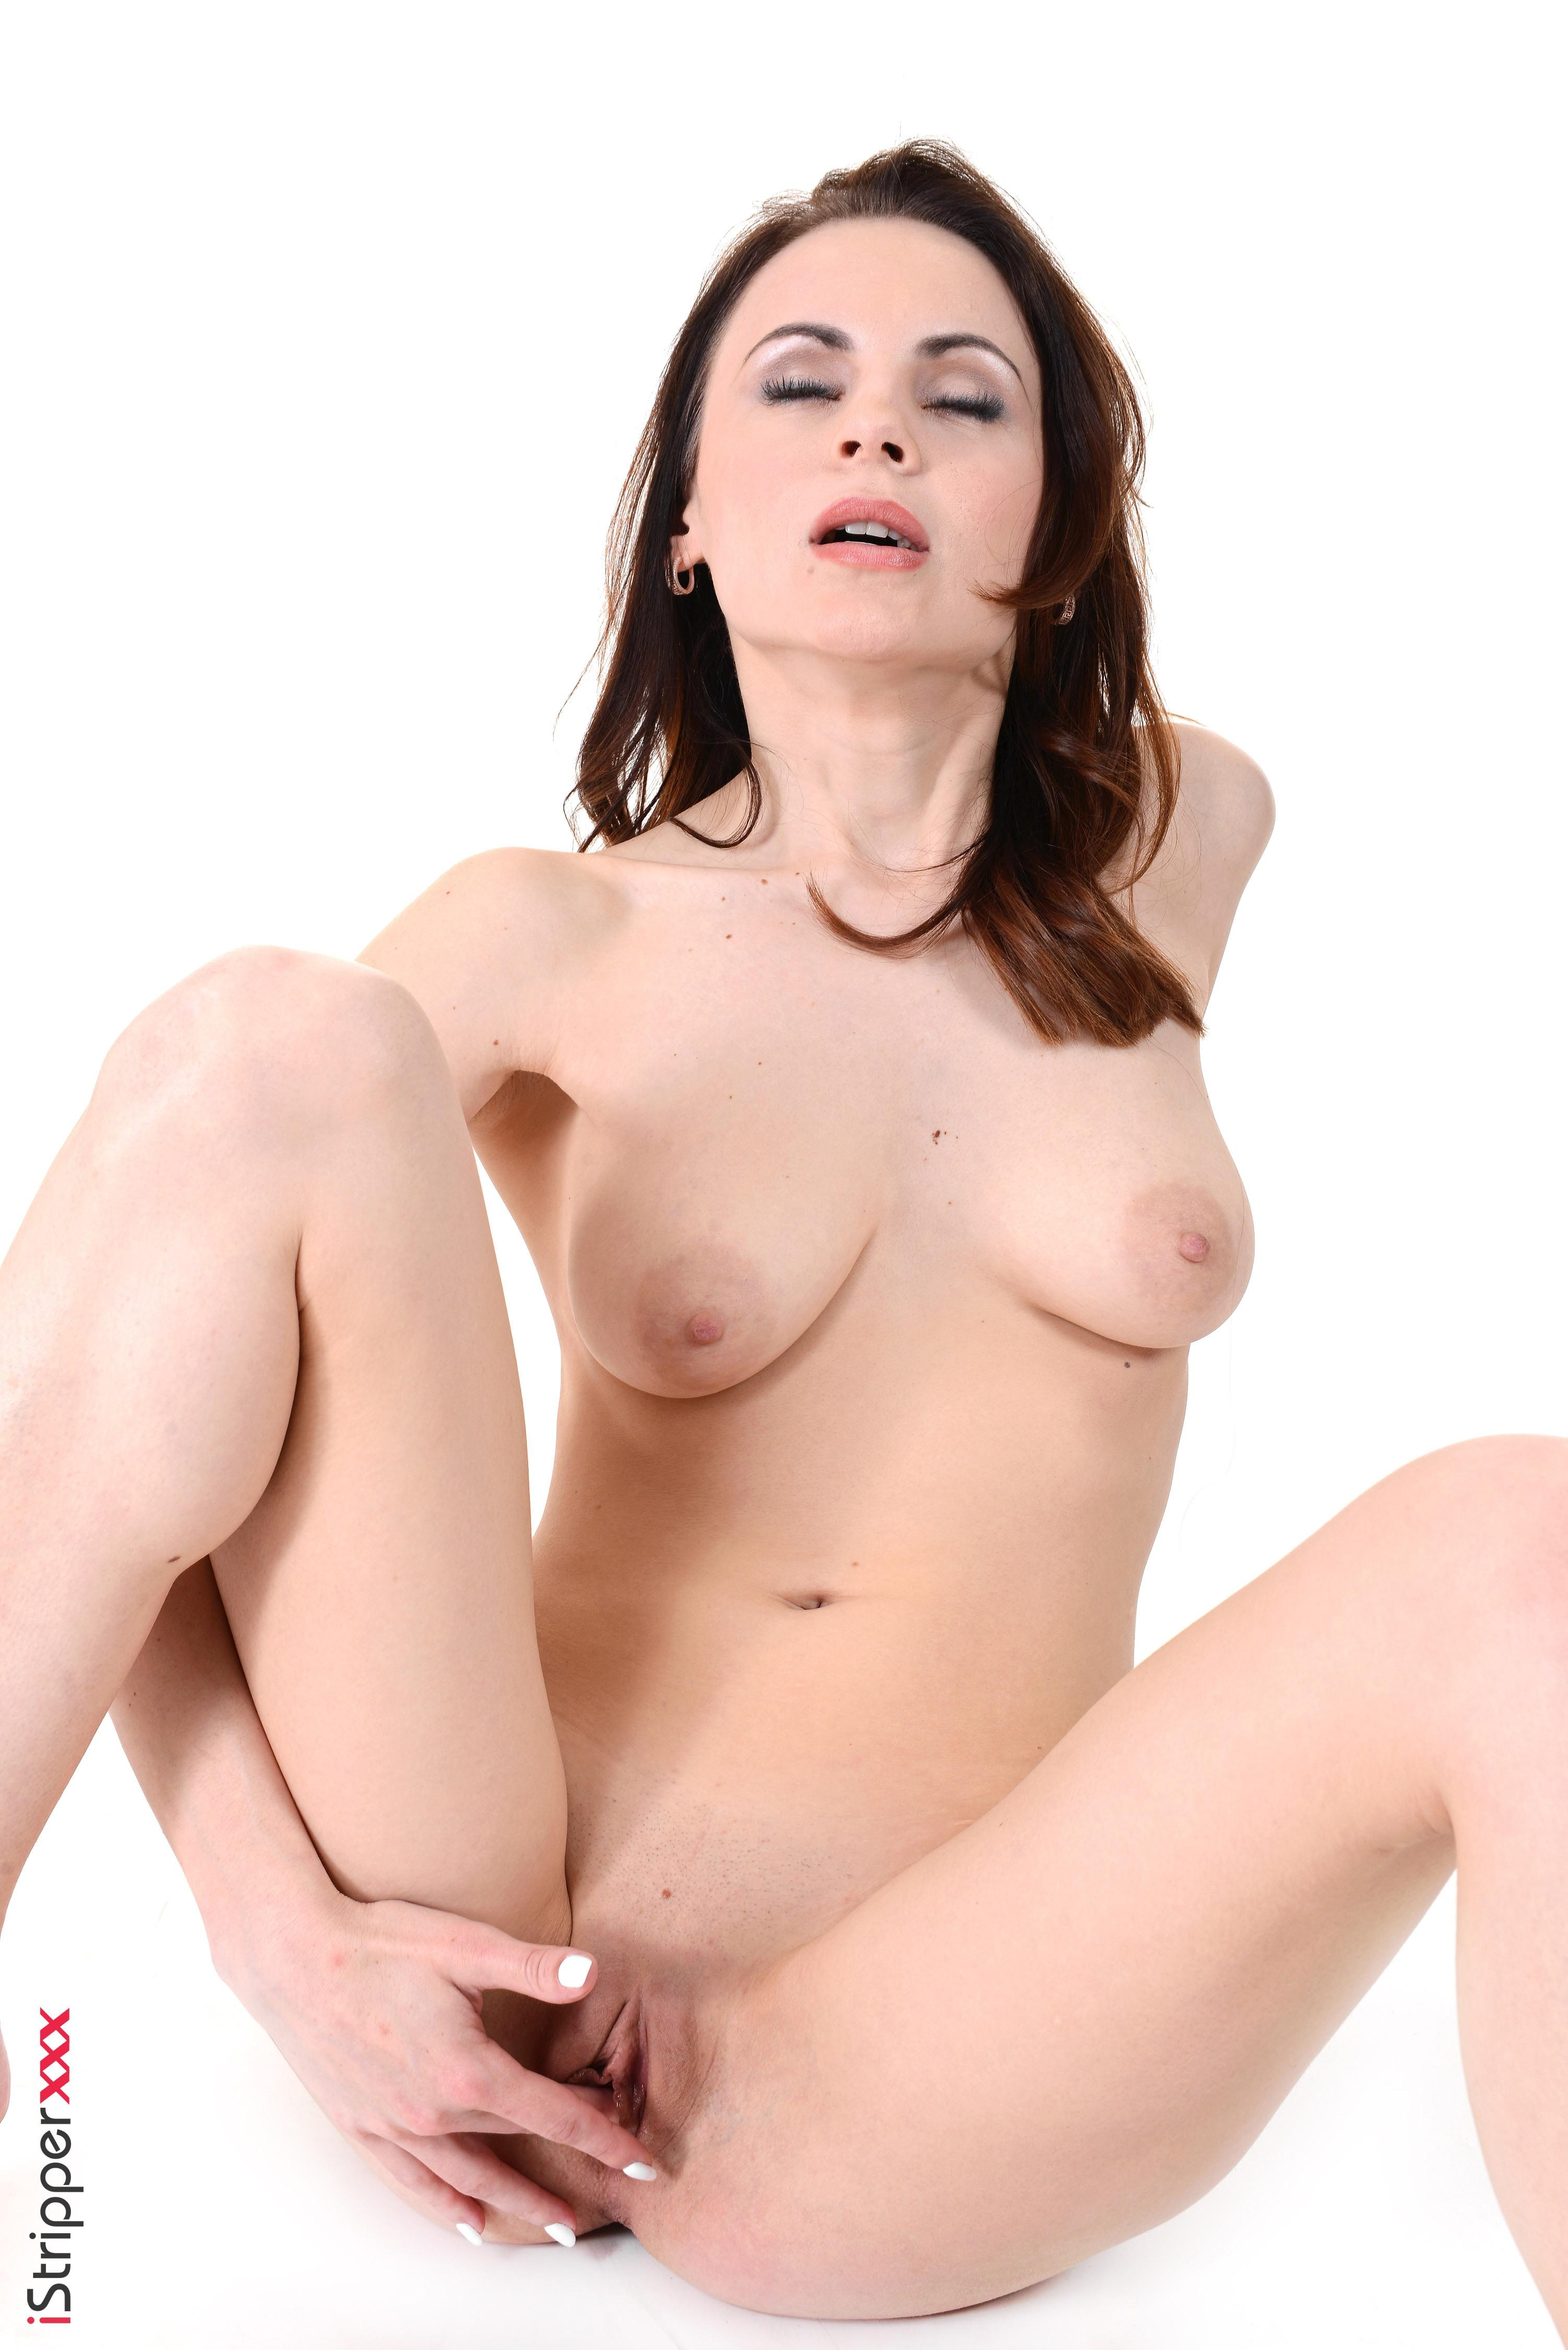 Natural redhead Victoria Travel masturbates with a sex toy after stripping naked